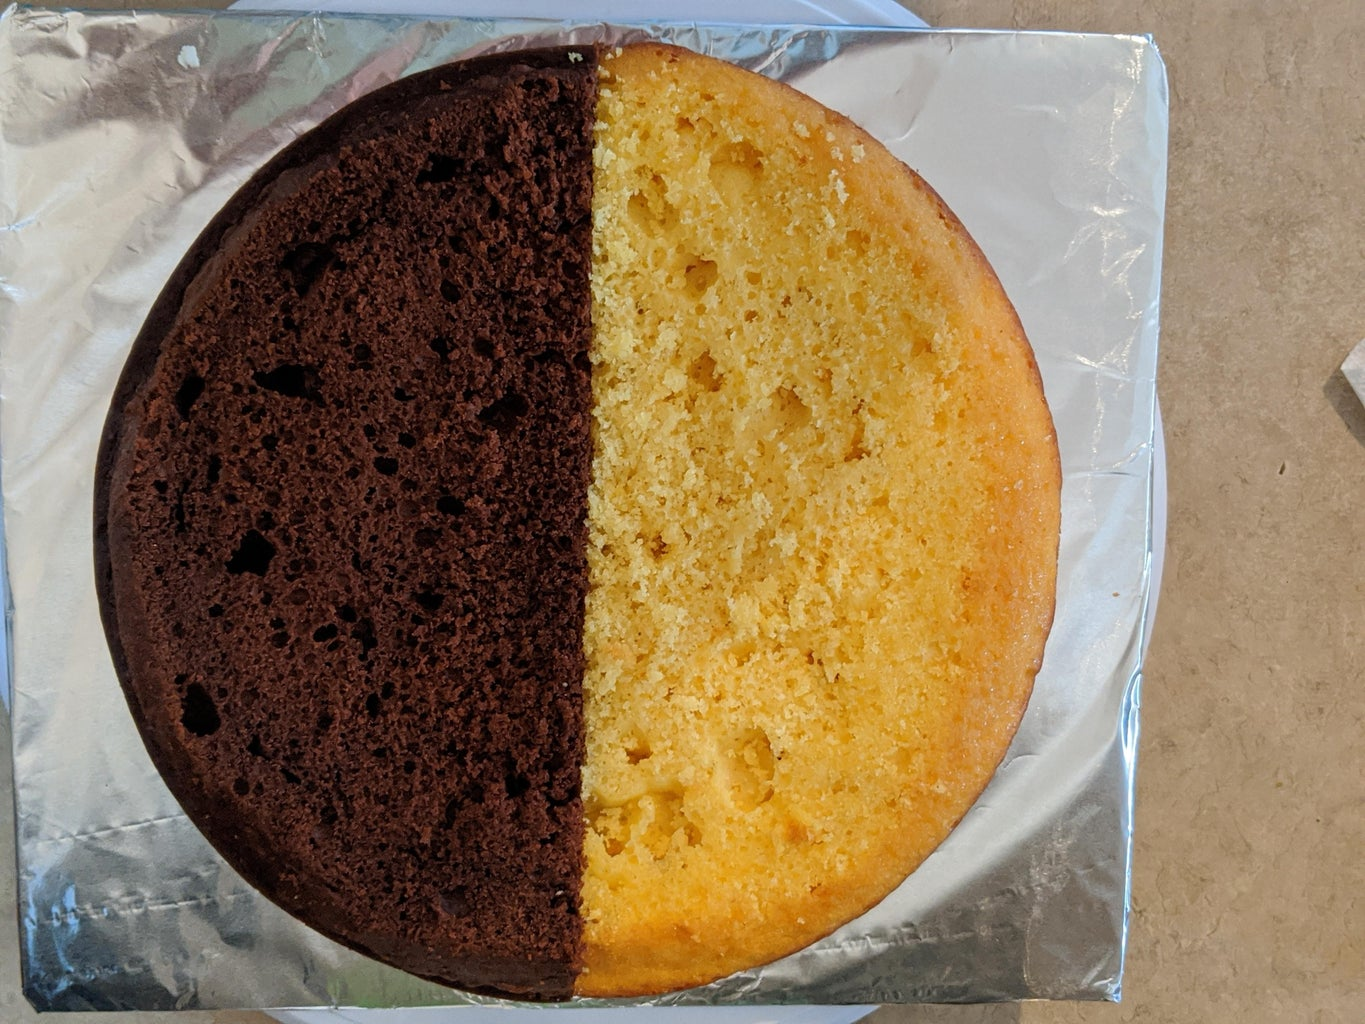 Placing Your Cakes - First Layer